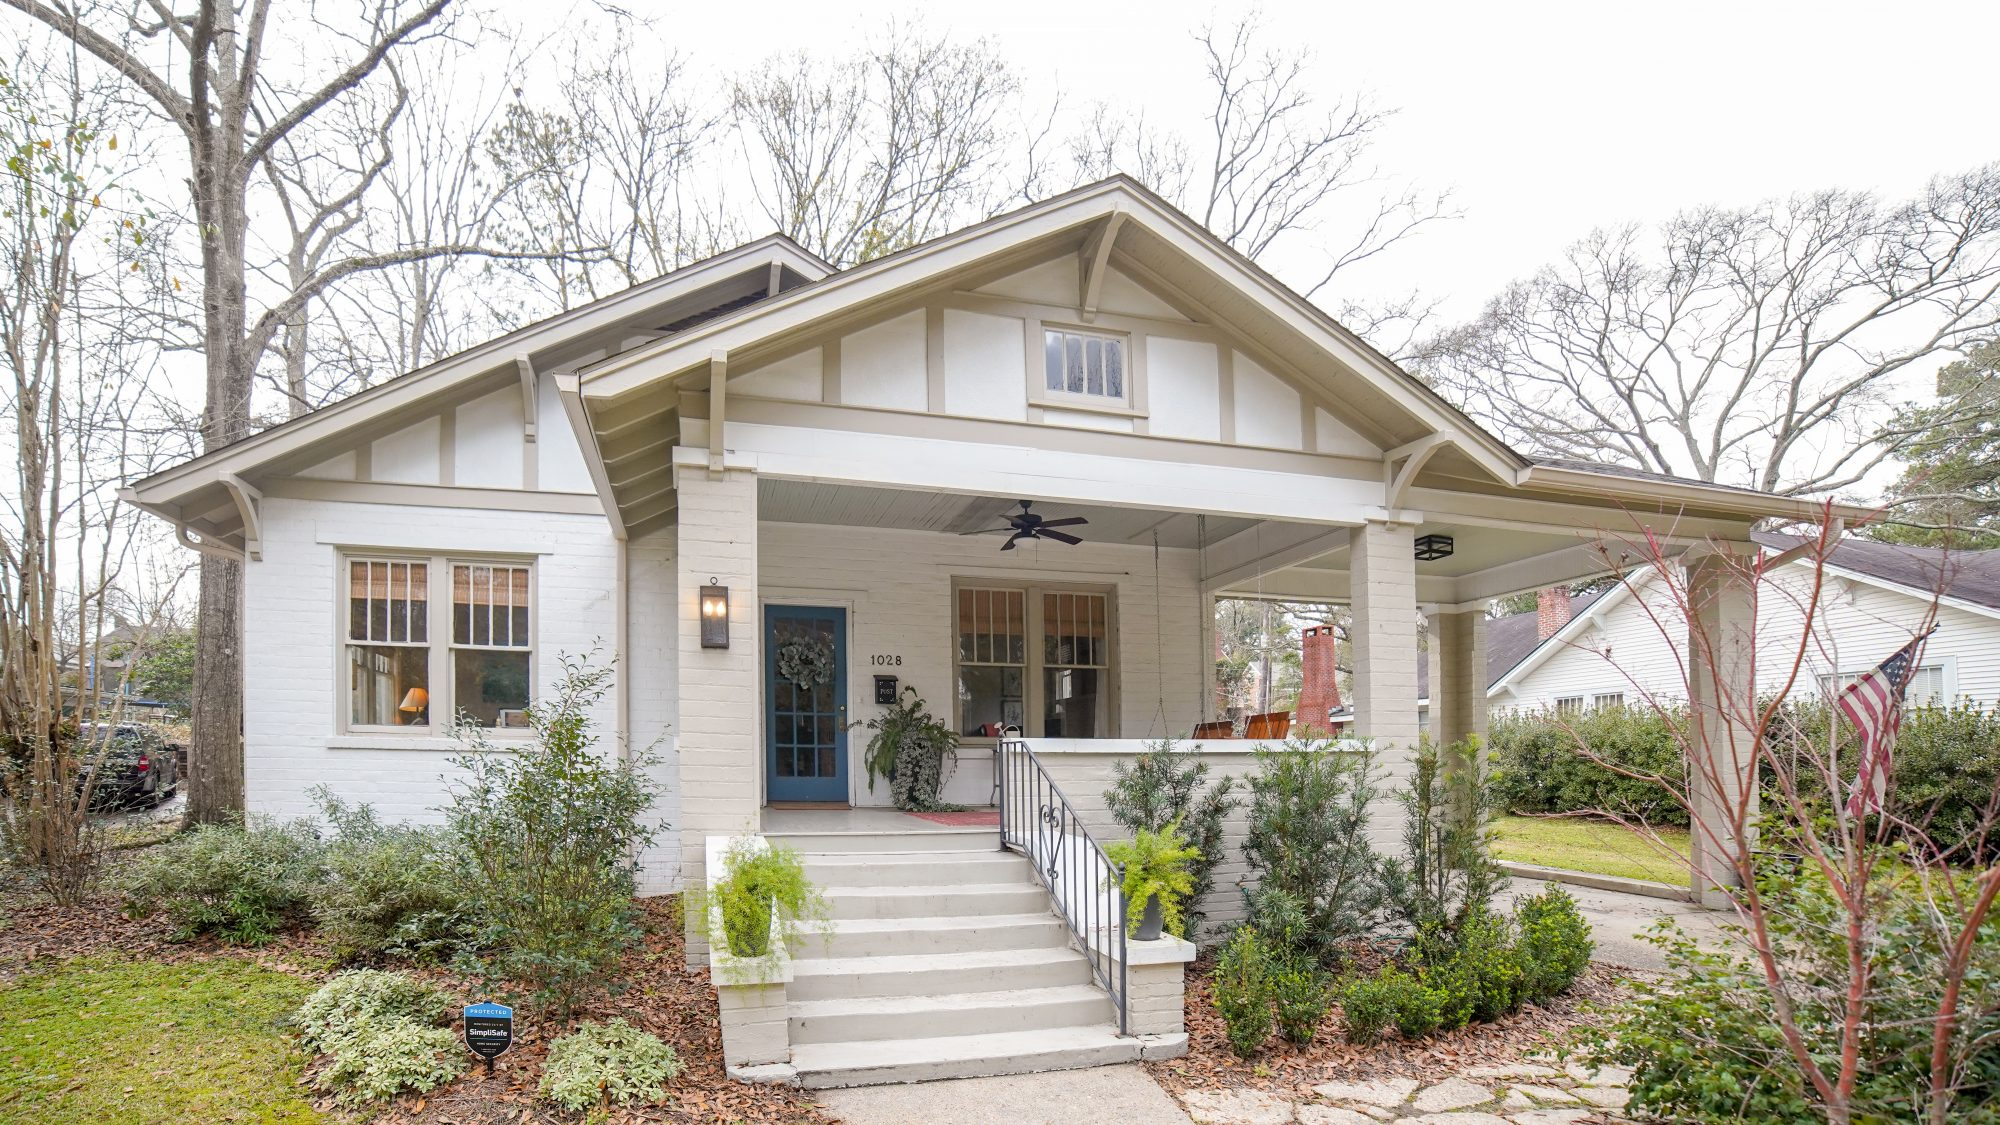 Splendid Laurel, Mississippi Cottage Featured on Home Town Can Be Yours for $185,000